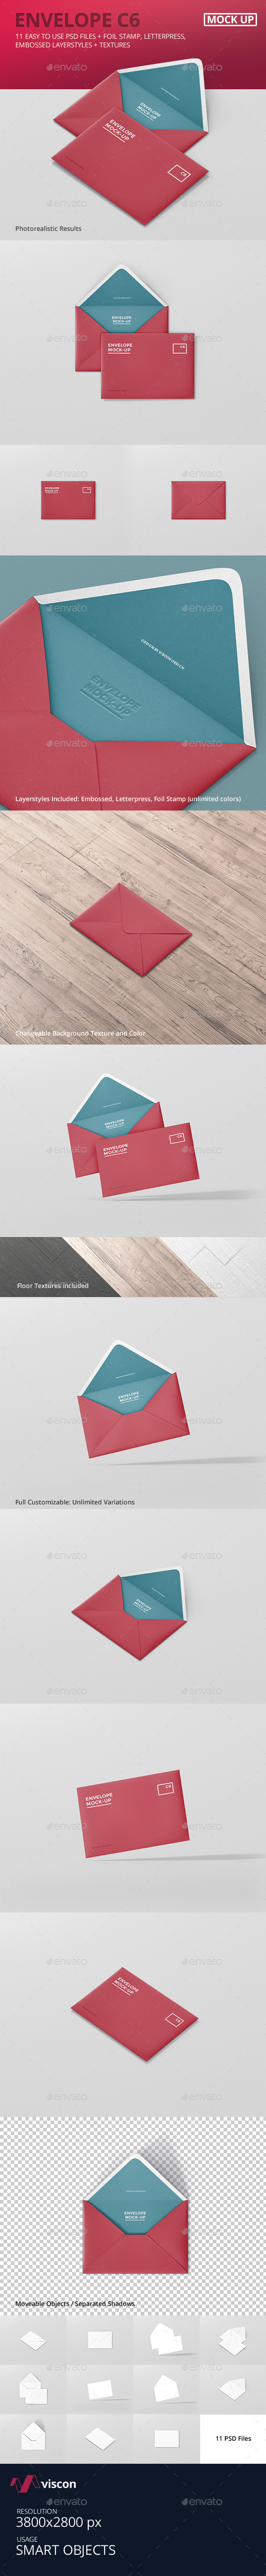 Envelope C6 Mock-Up - Stationery Print